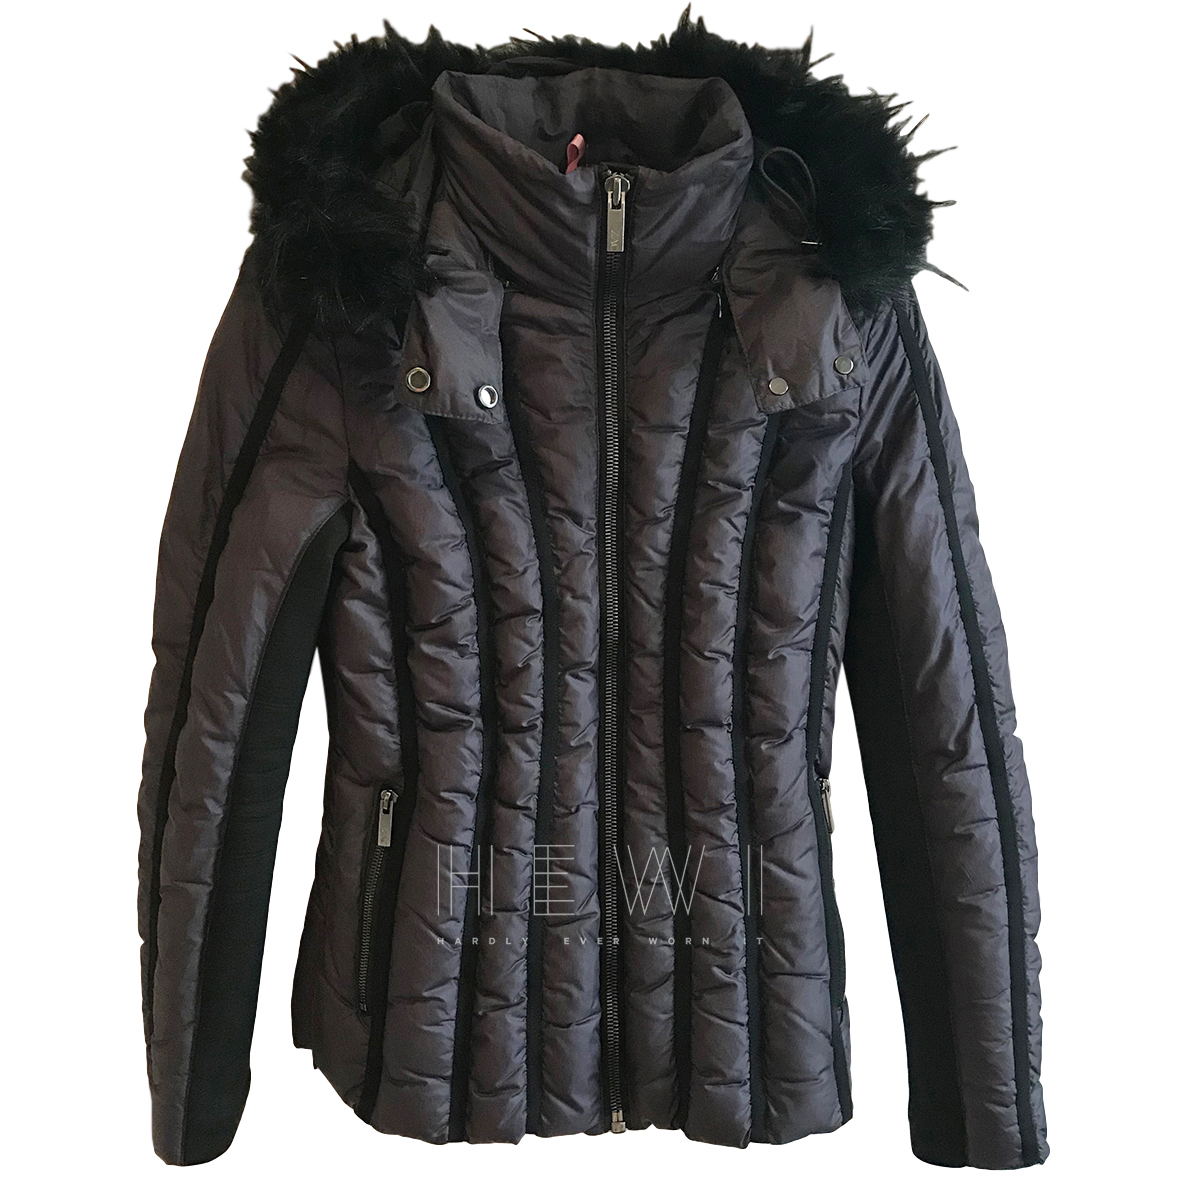 Zac Posen Faux-Fur Trimmed Quilted Jacket